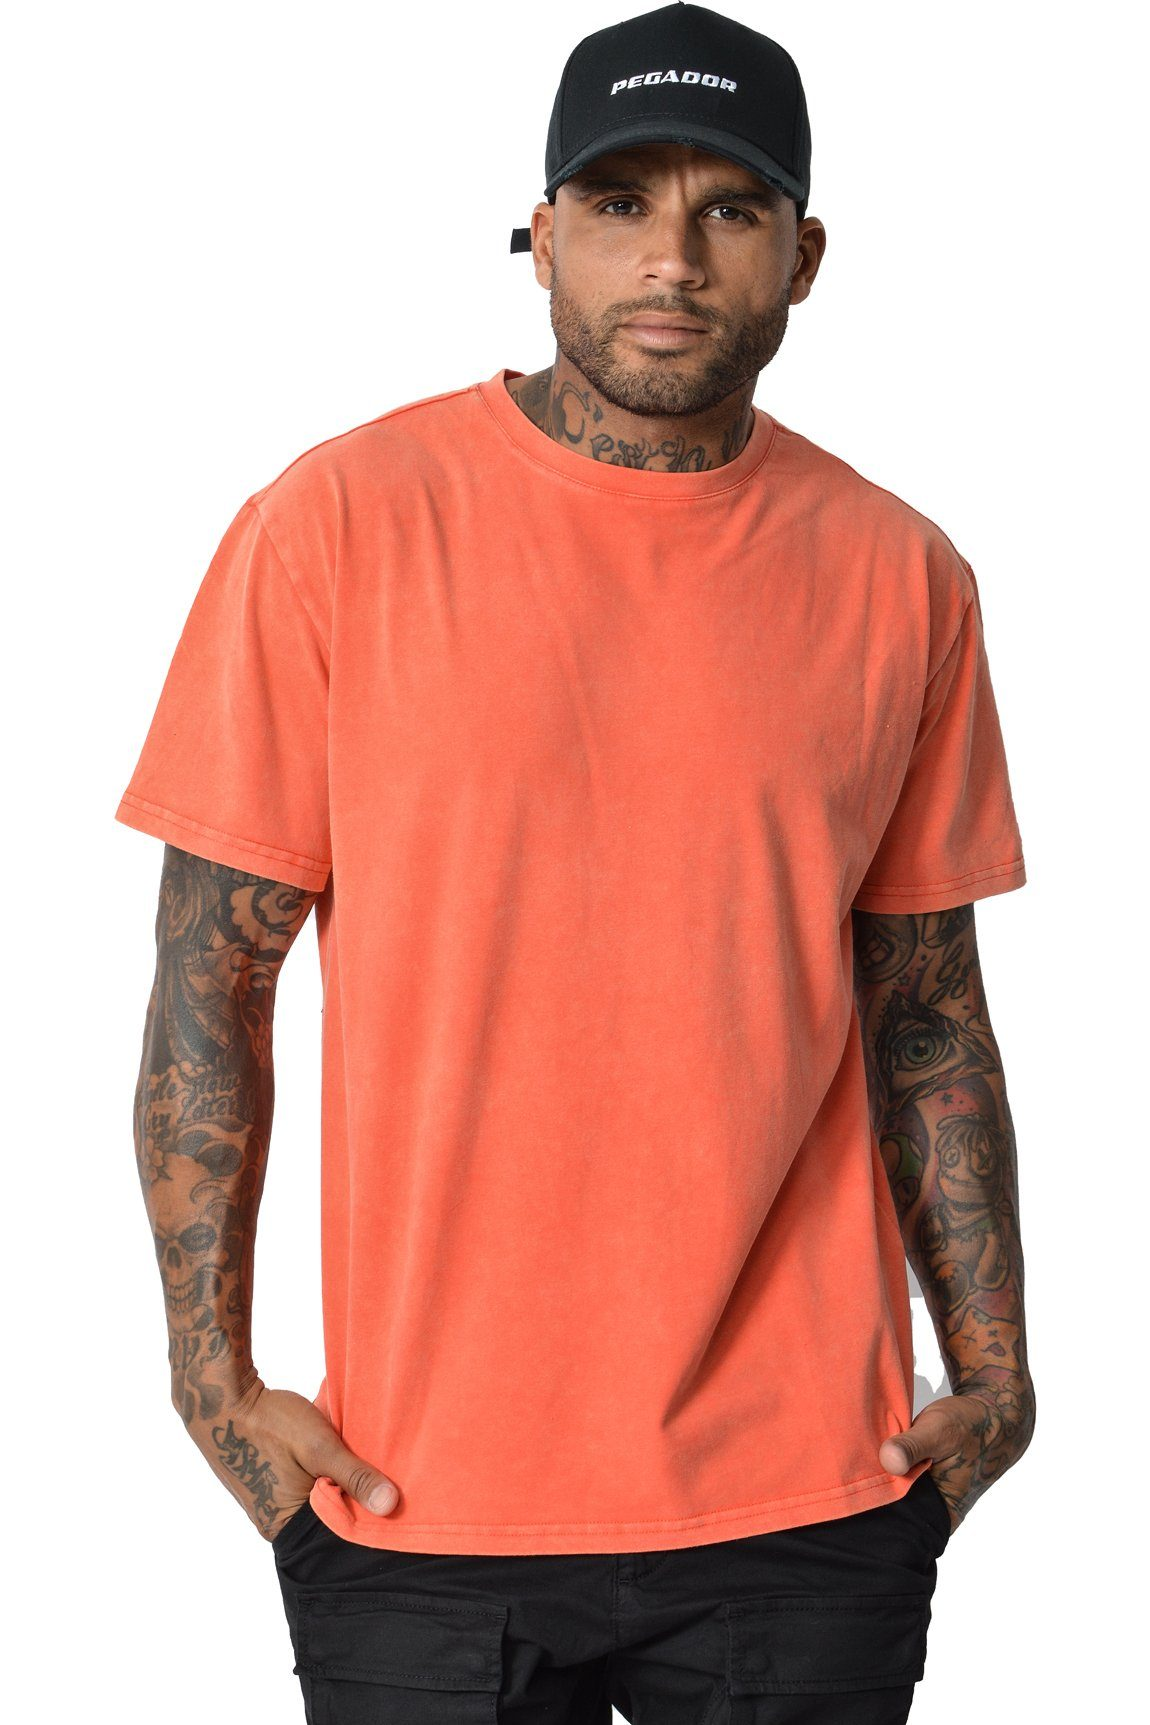 Basic T-Shirt Washed Red - PEGADOR - Dominate the Hype